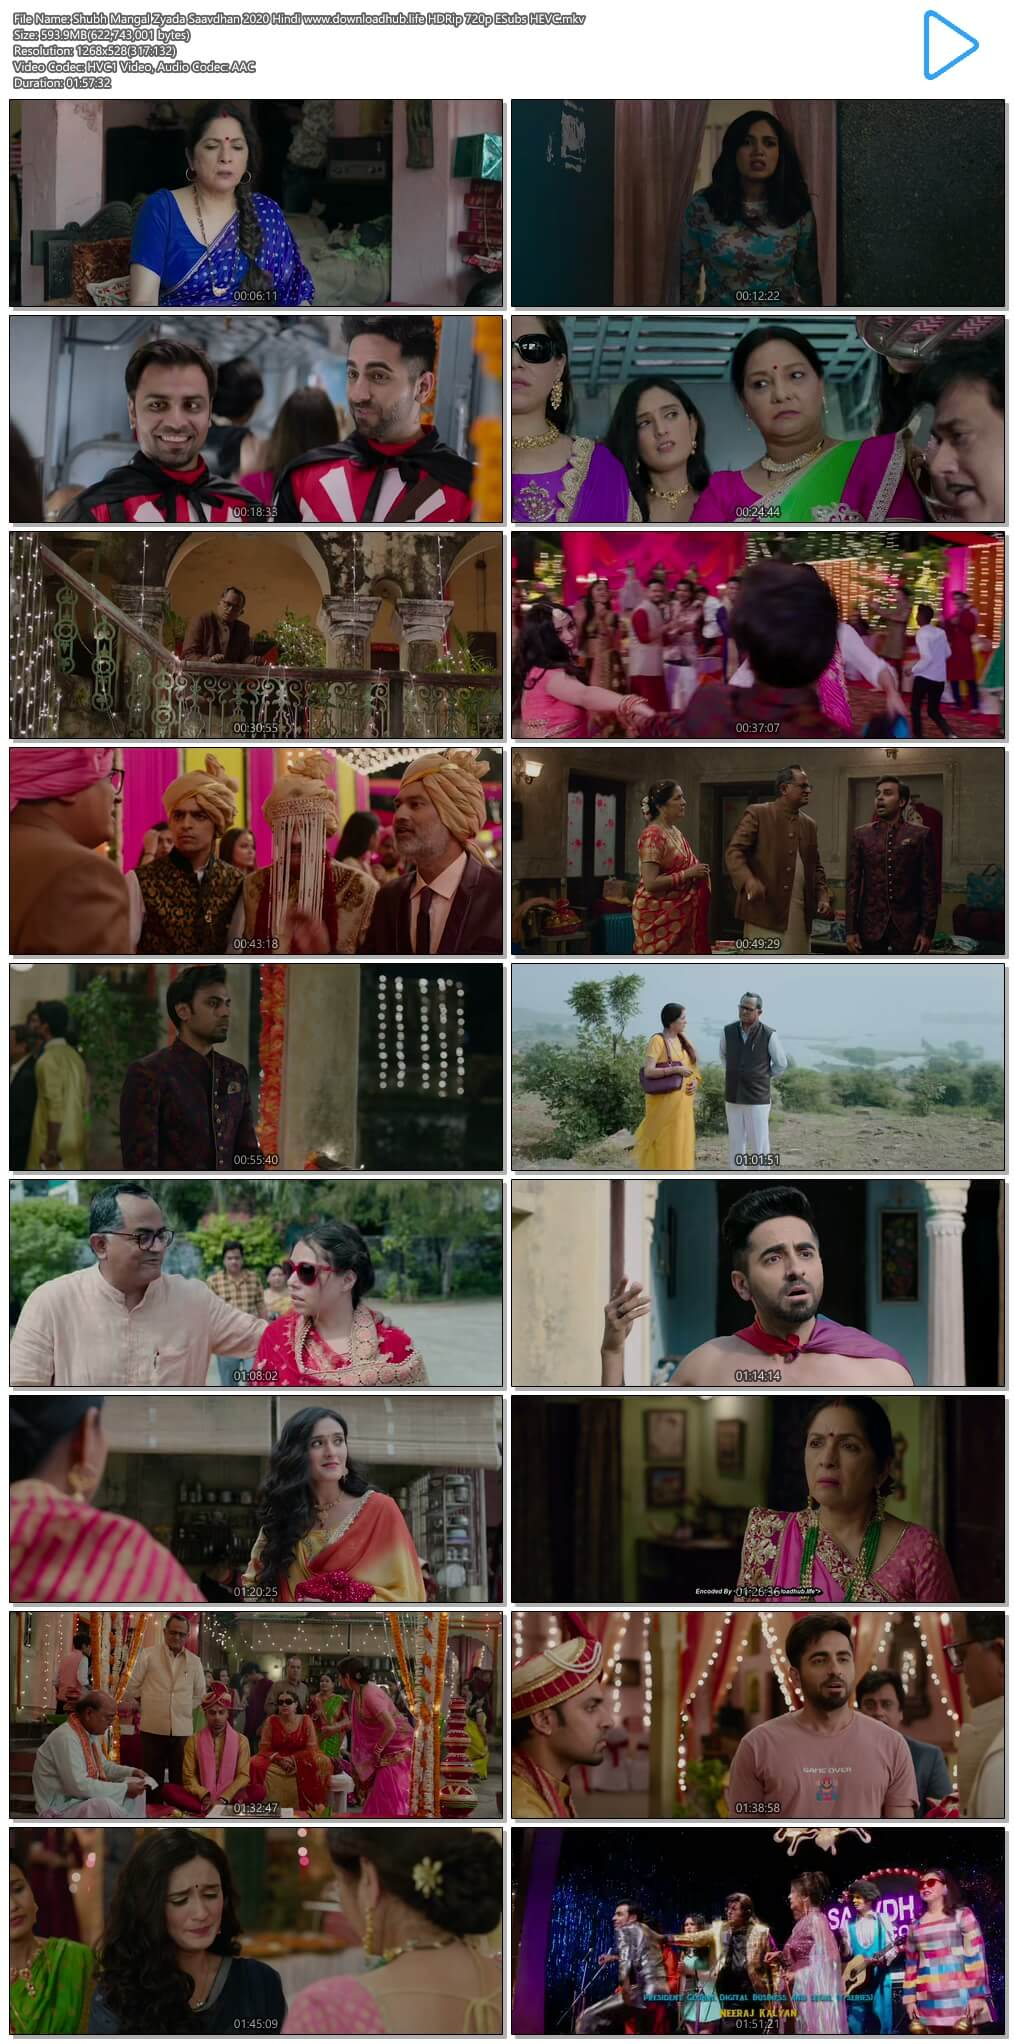 Shubh Mangal Zyada Saavdhan 2020 Hindi 600MB HDRip 720p ESubs HEVC